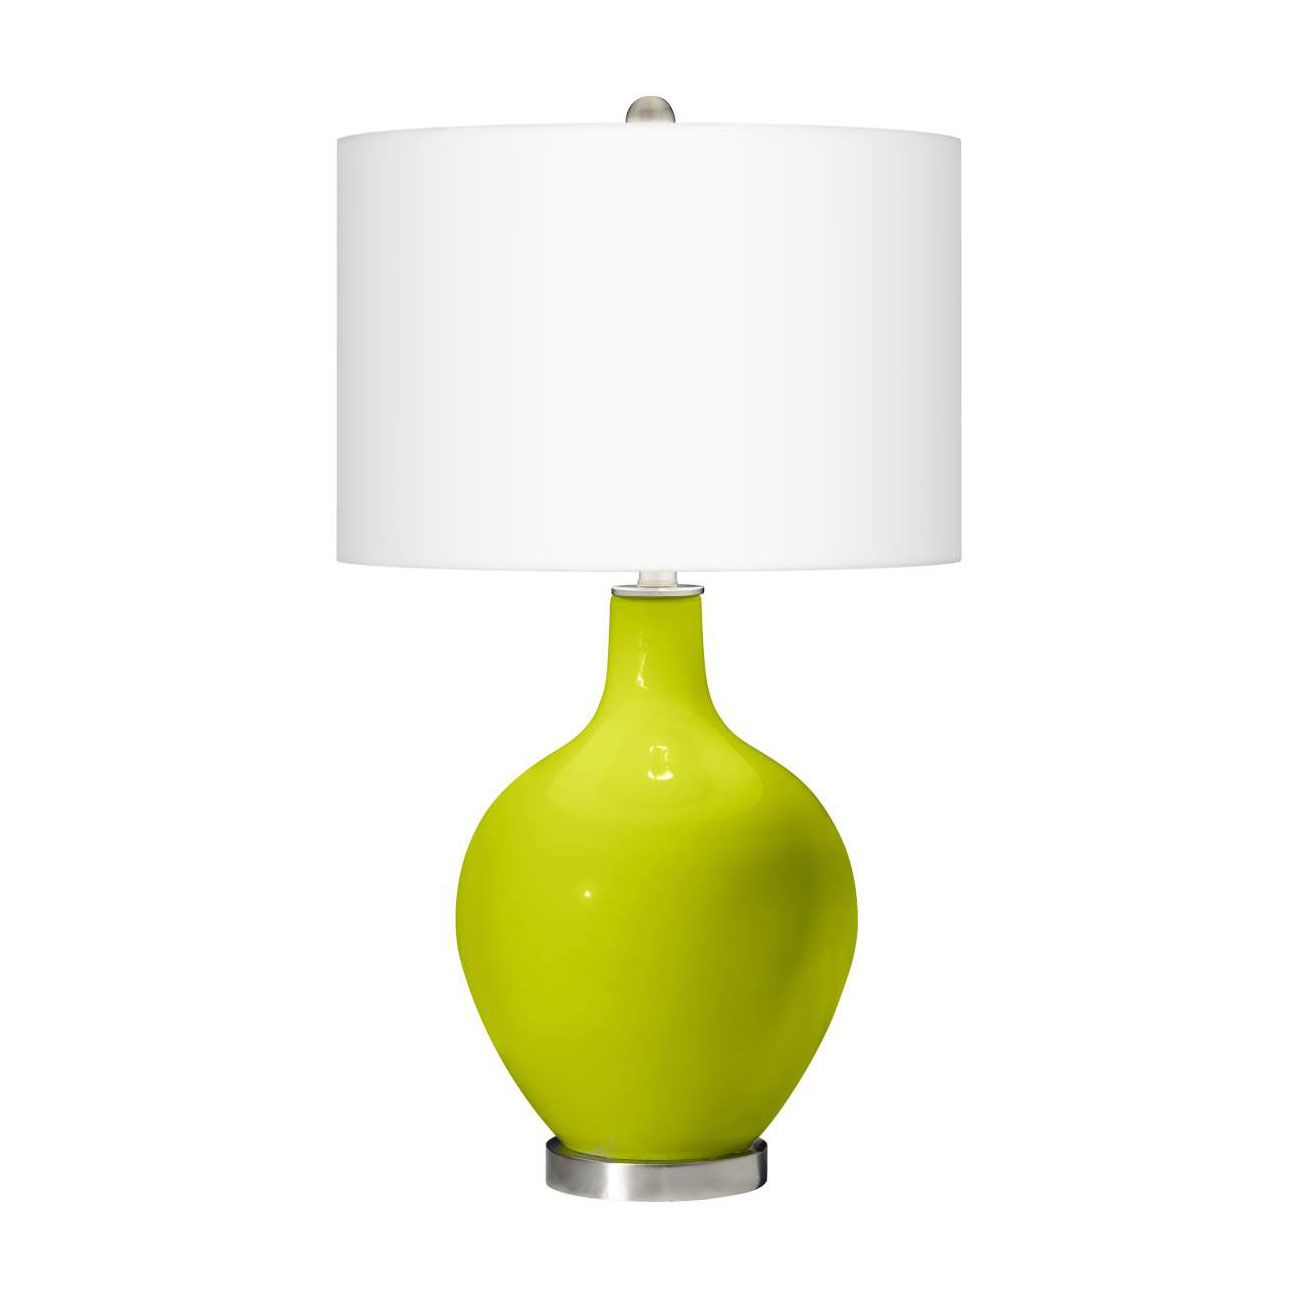 Apple green table lamp dotandbo dotandboholiday autumn pin apple green table lamp dotandbo dotandboholiday mozeypictures Choice Image